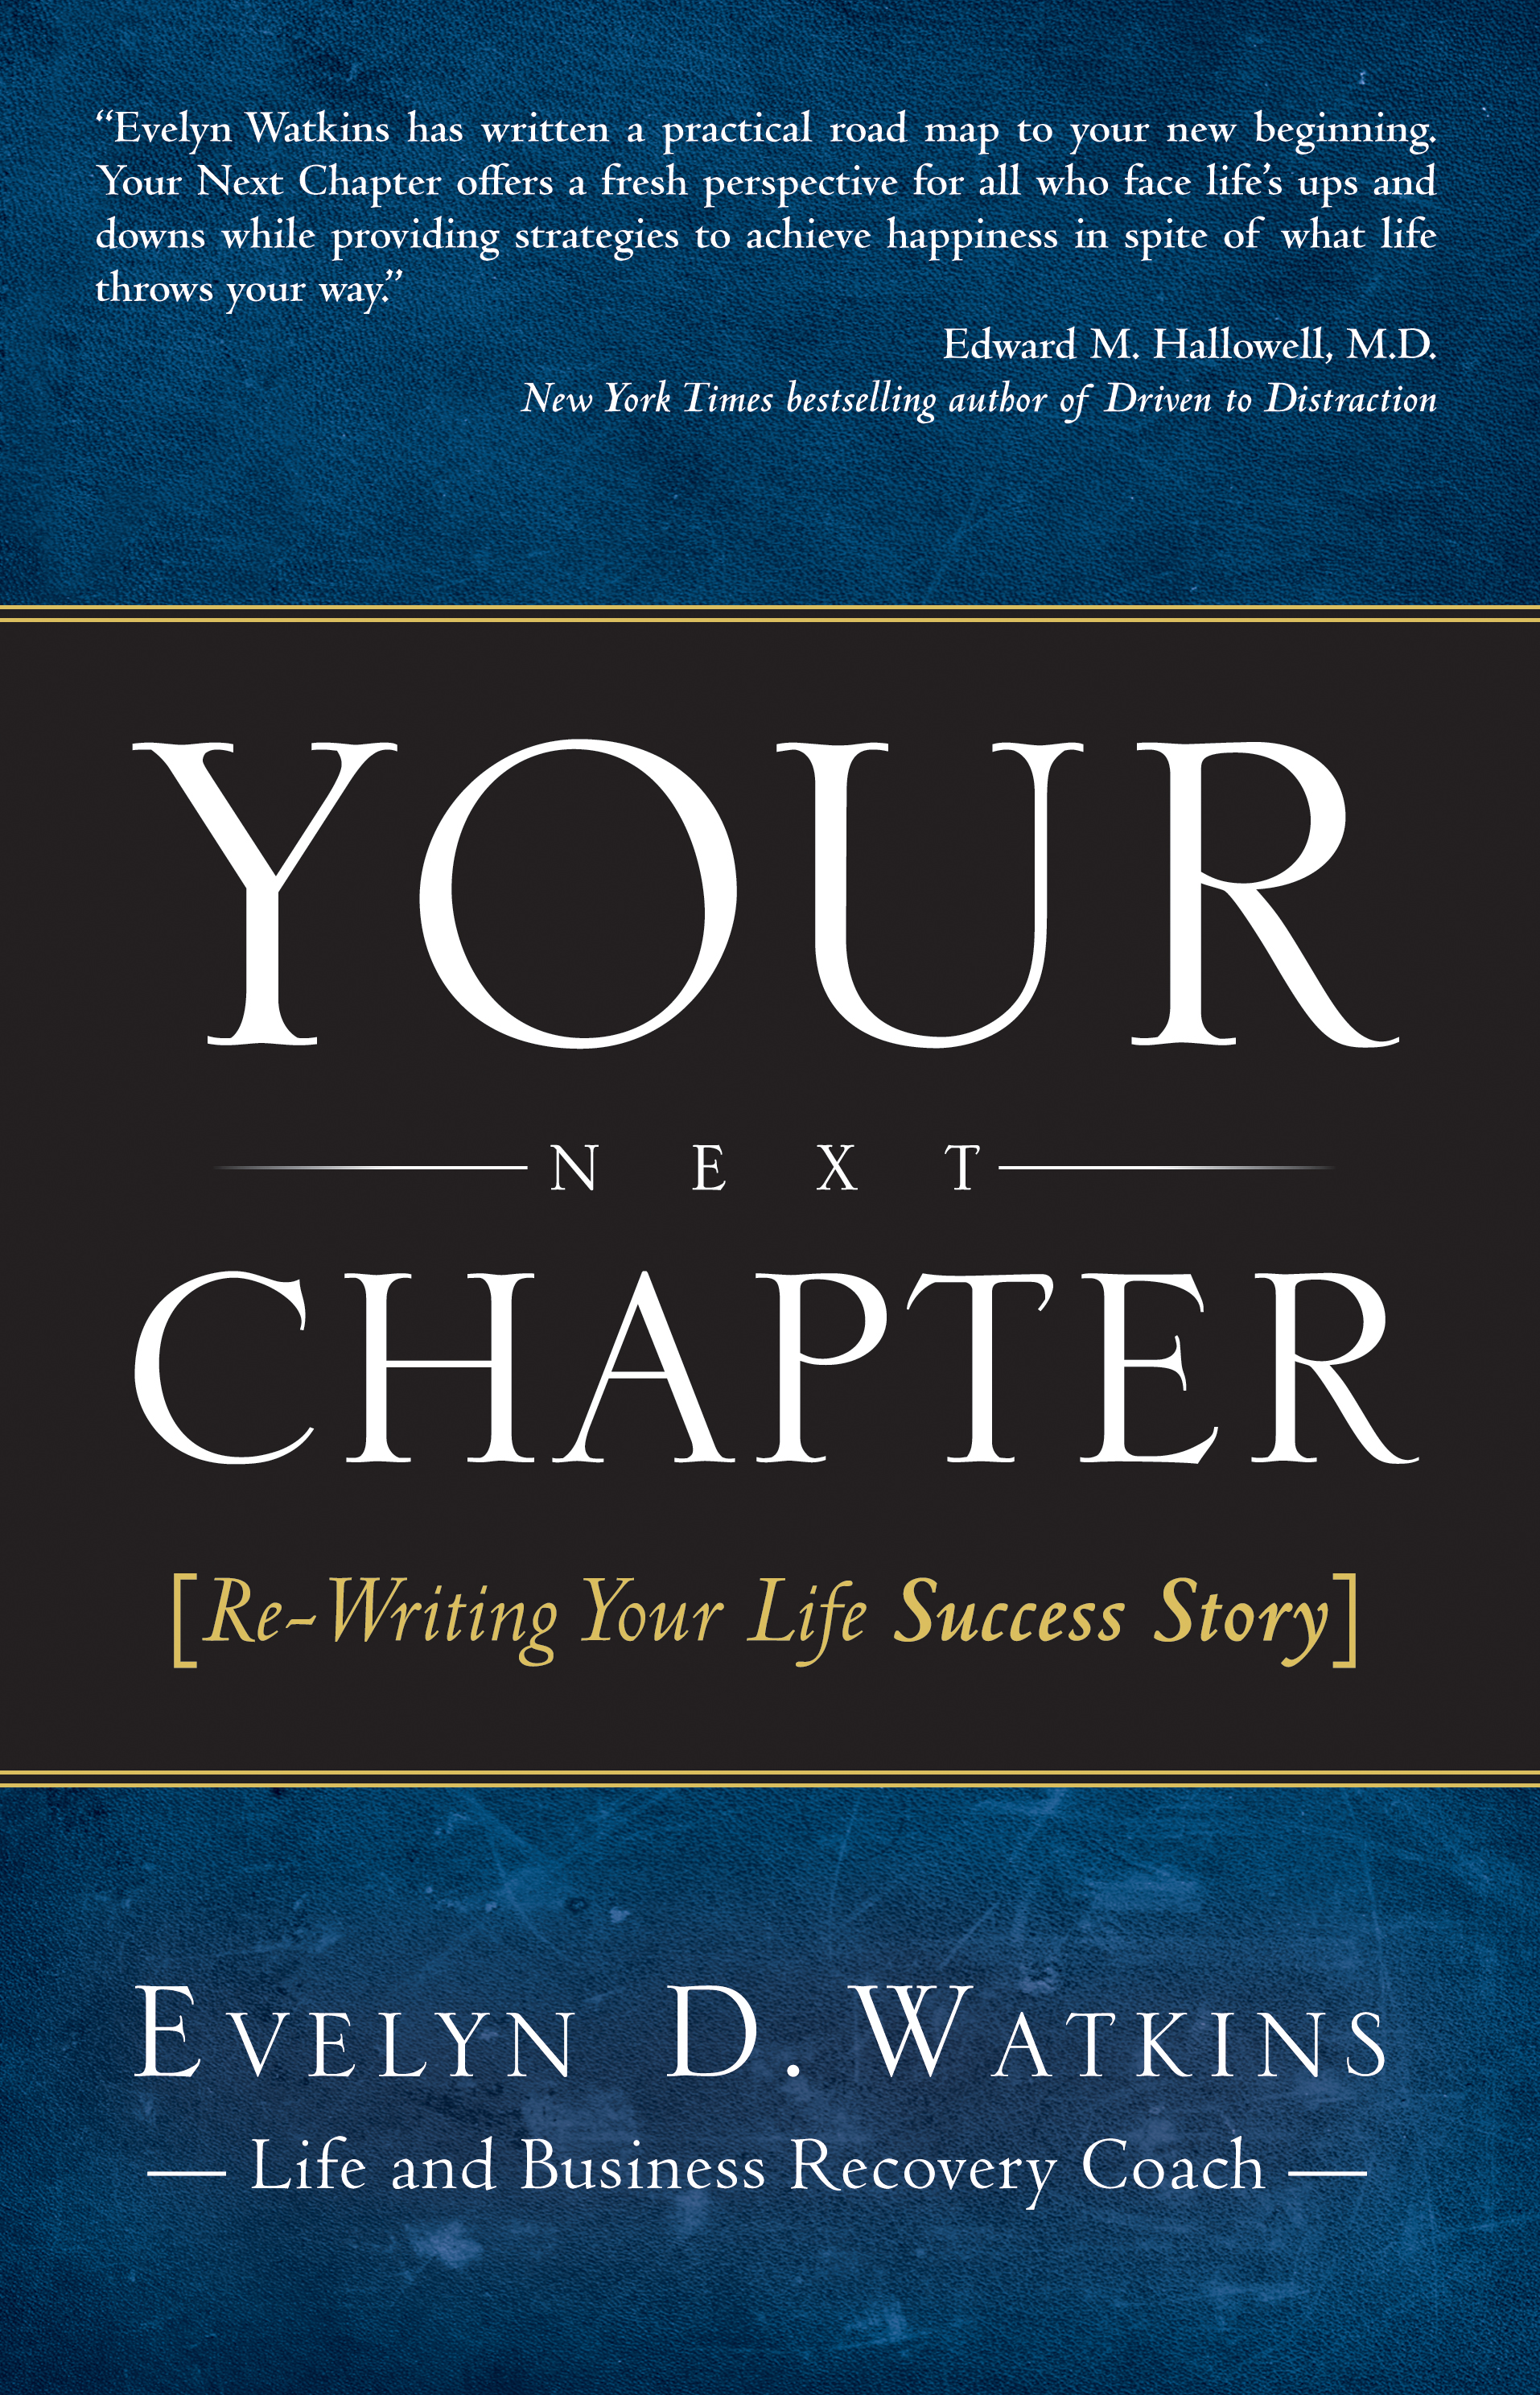 Your Next Chapter - Evelyn D. Watkins